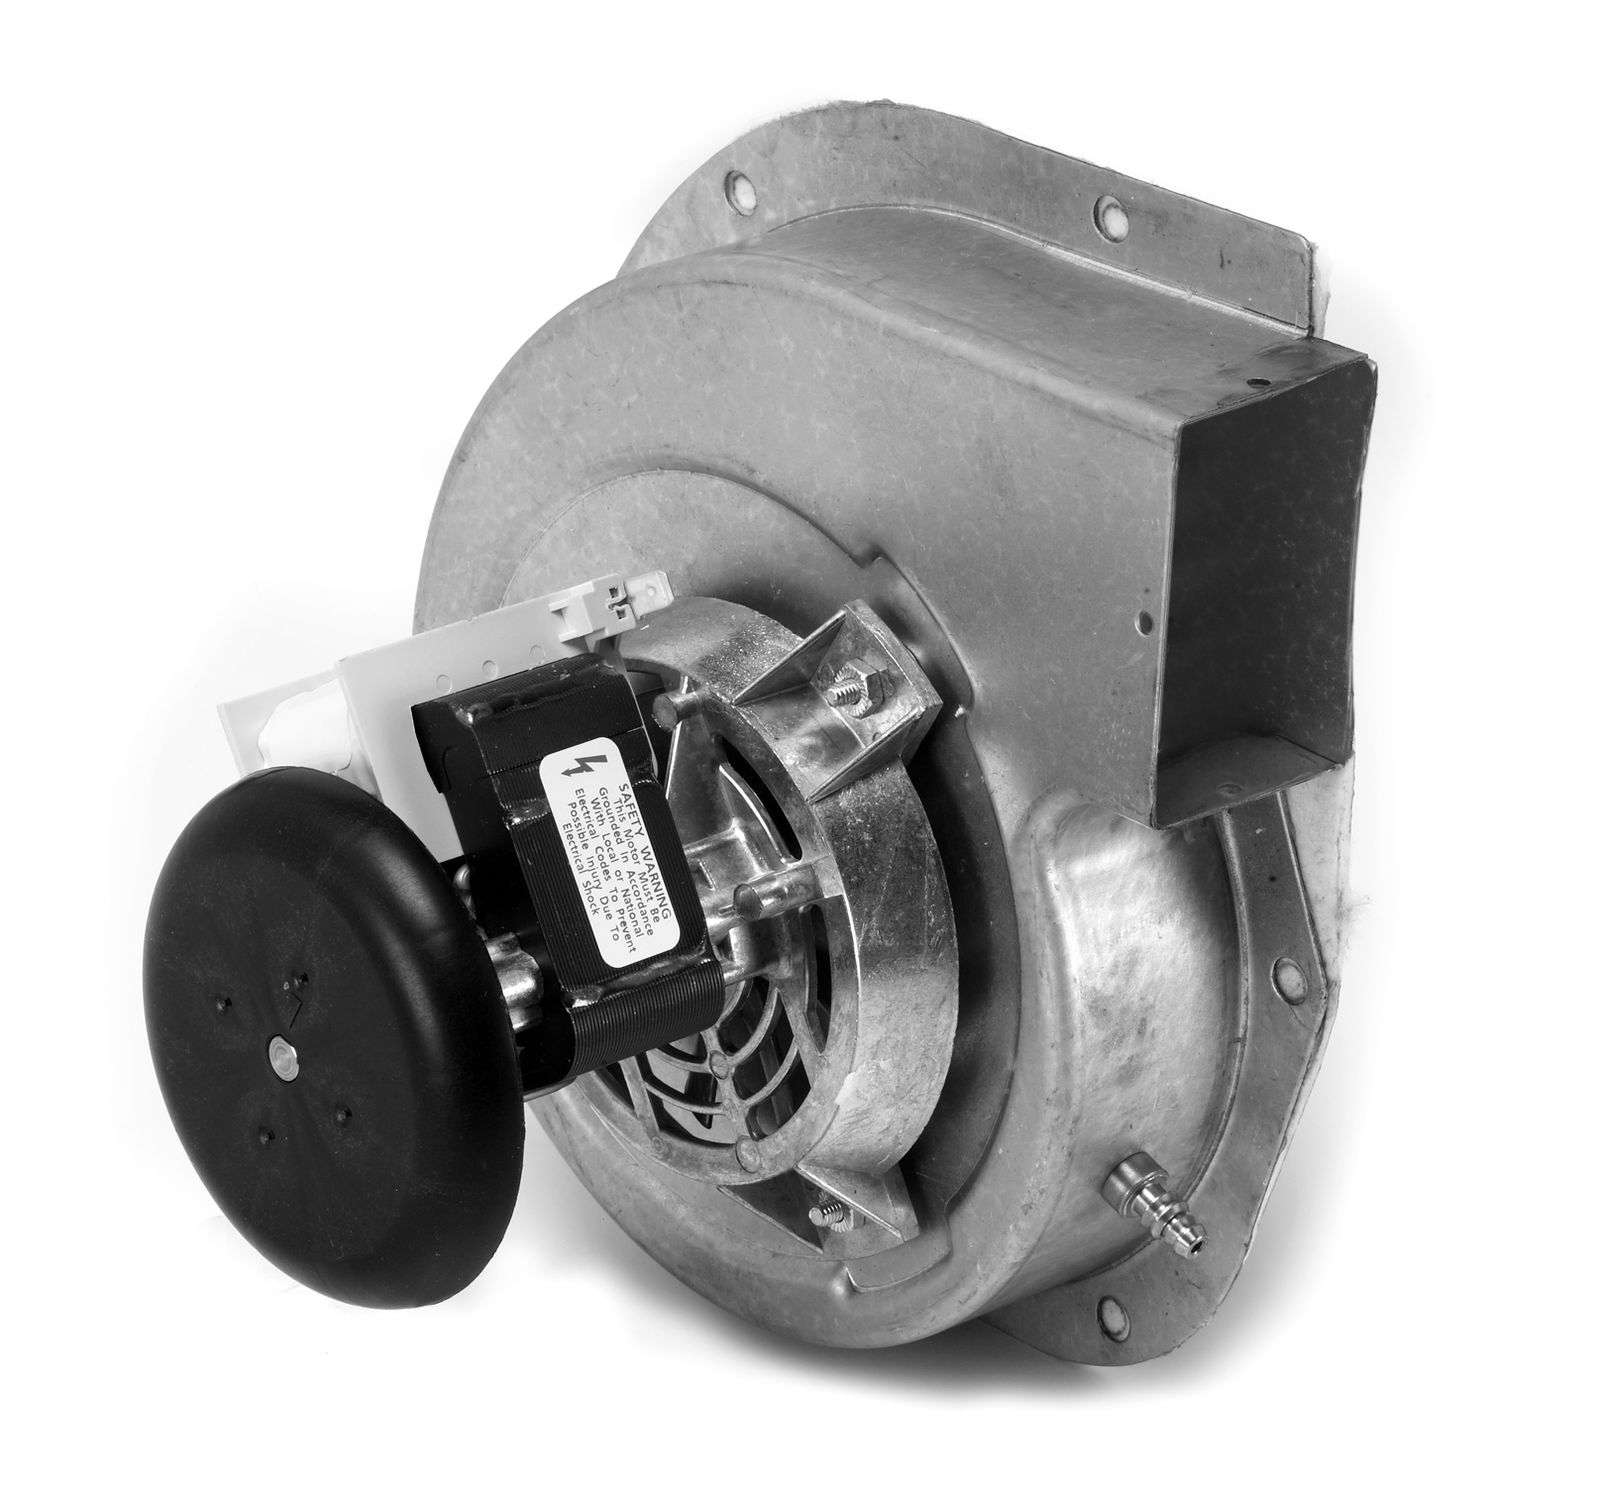 A182 fasco furnace inducer motor for goodman 7002 3036 for Fasco motors and blowers